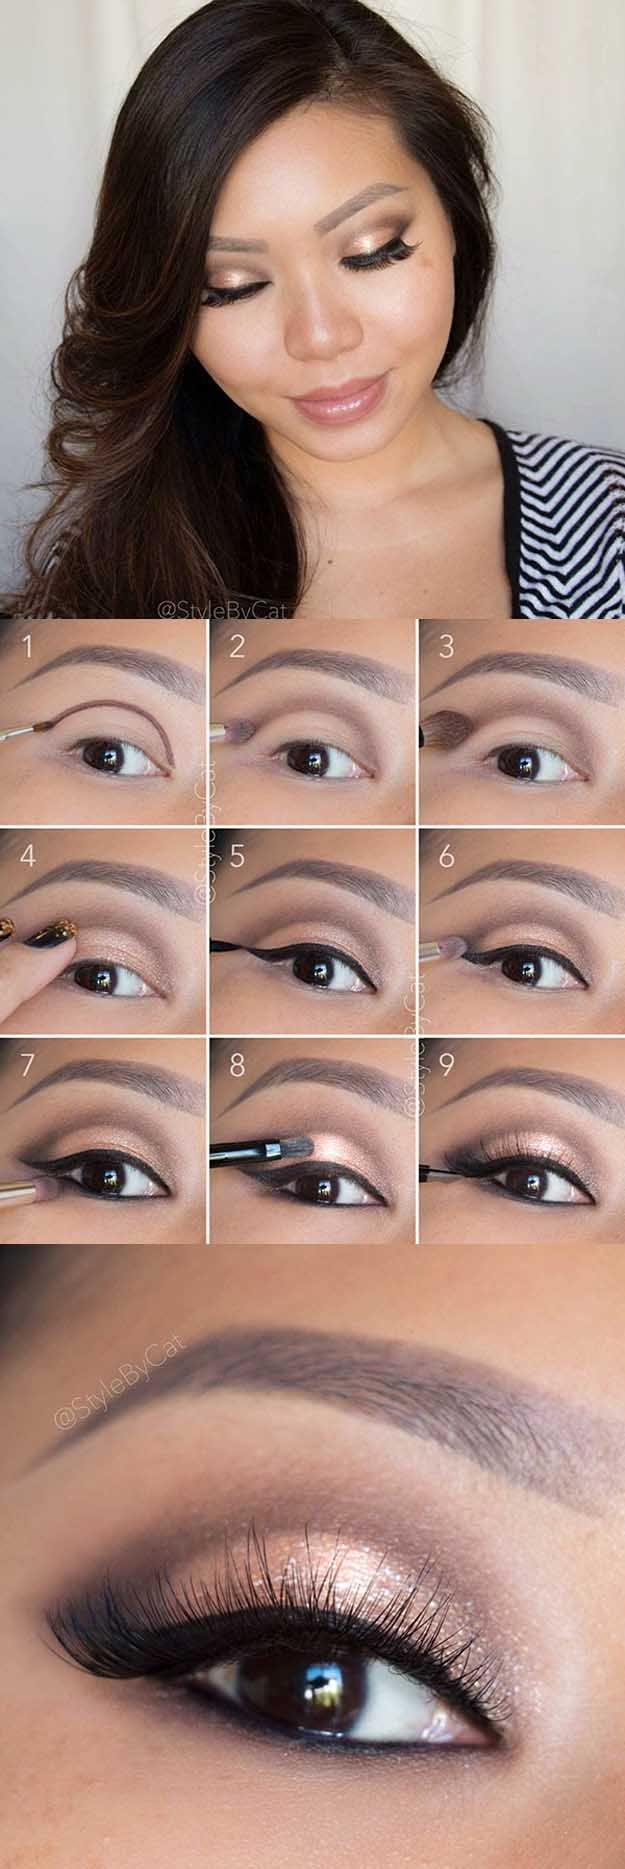 35 Best Makeup Tips For Asian Women Eye makeup, Hooded